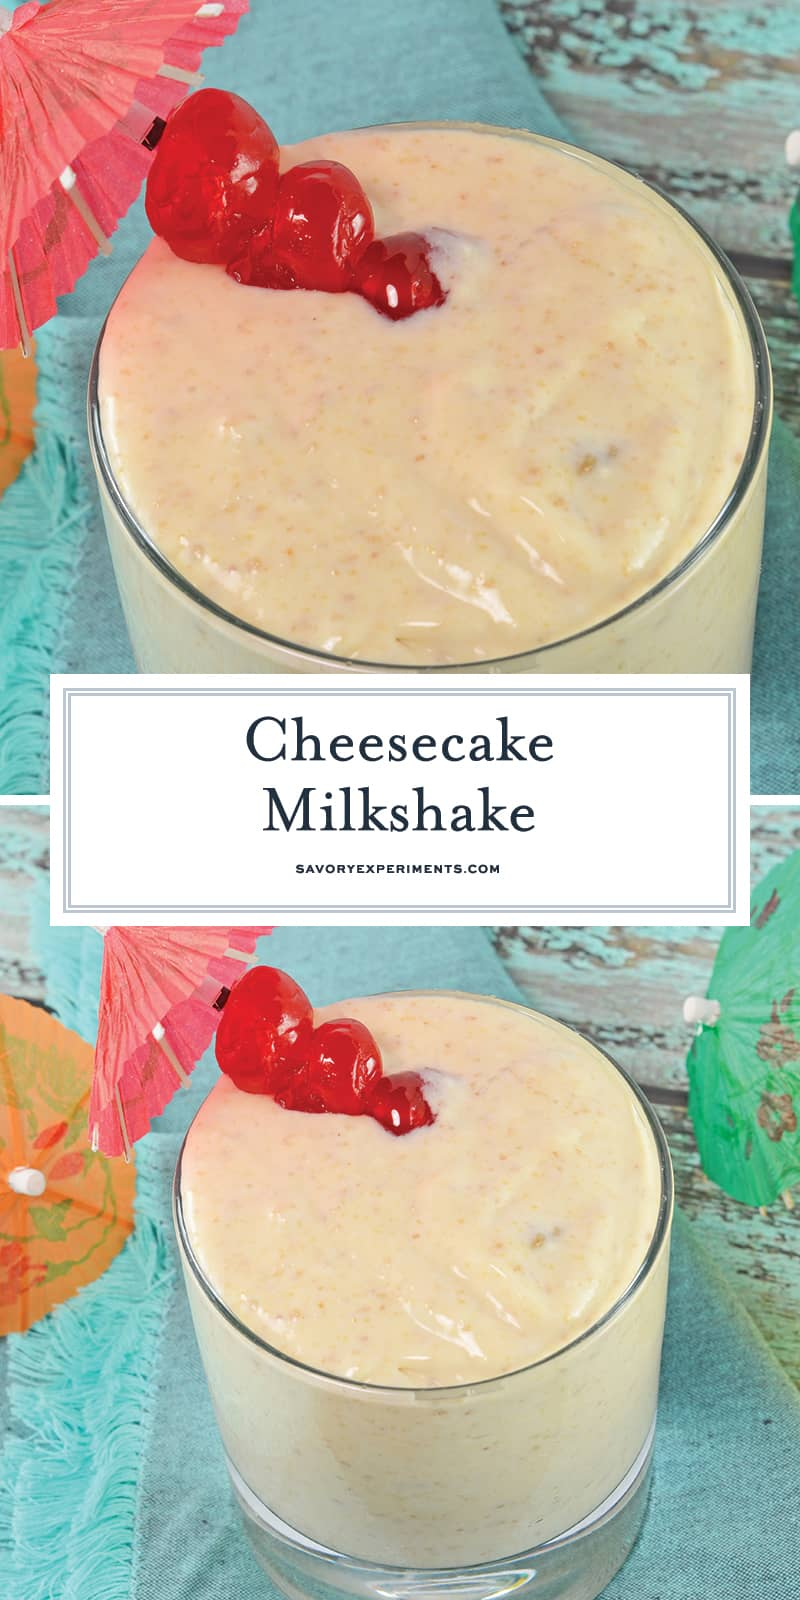 A Cheesecake Milkshake is a frozen mixed drink made with real cheesecake and vanilla vodka! Use different flavored cheesecakes for even more fun flavor combos! #howtomakeamilkshake #milkshakerecipe #homemademilkshake www.savoryexperiments.com